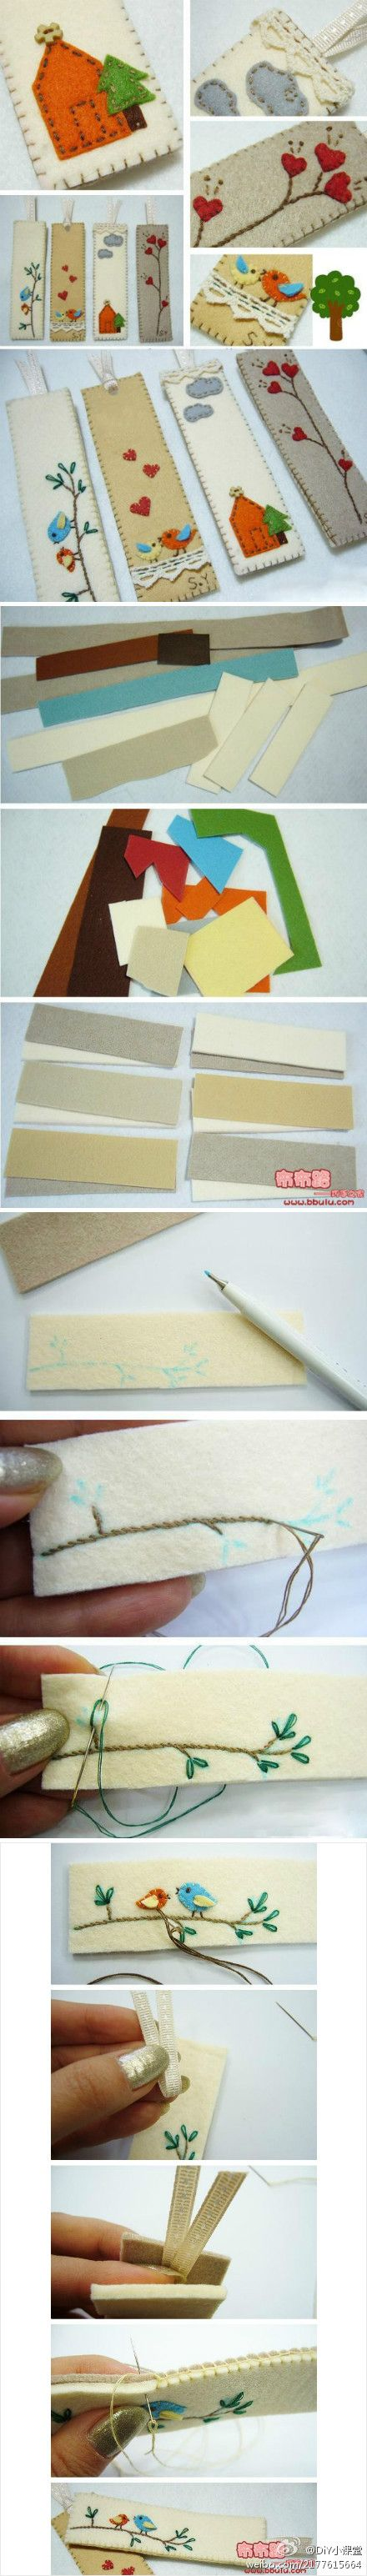 Step by step tutorial felt bookmarks